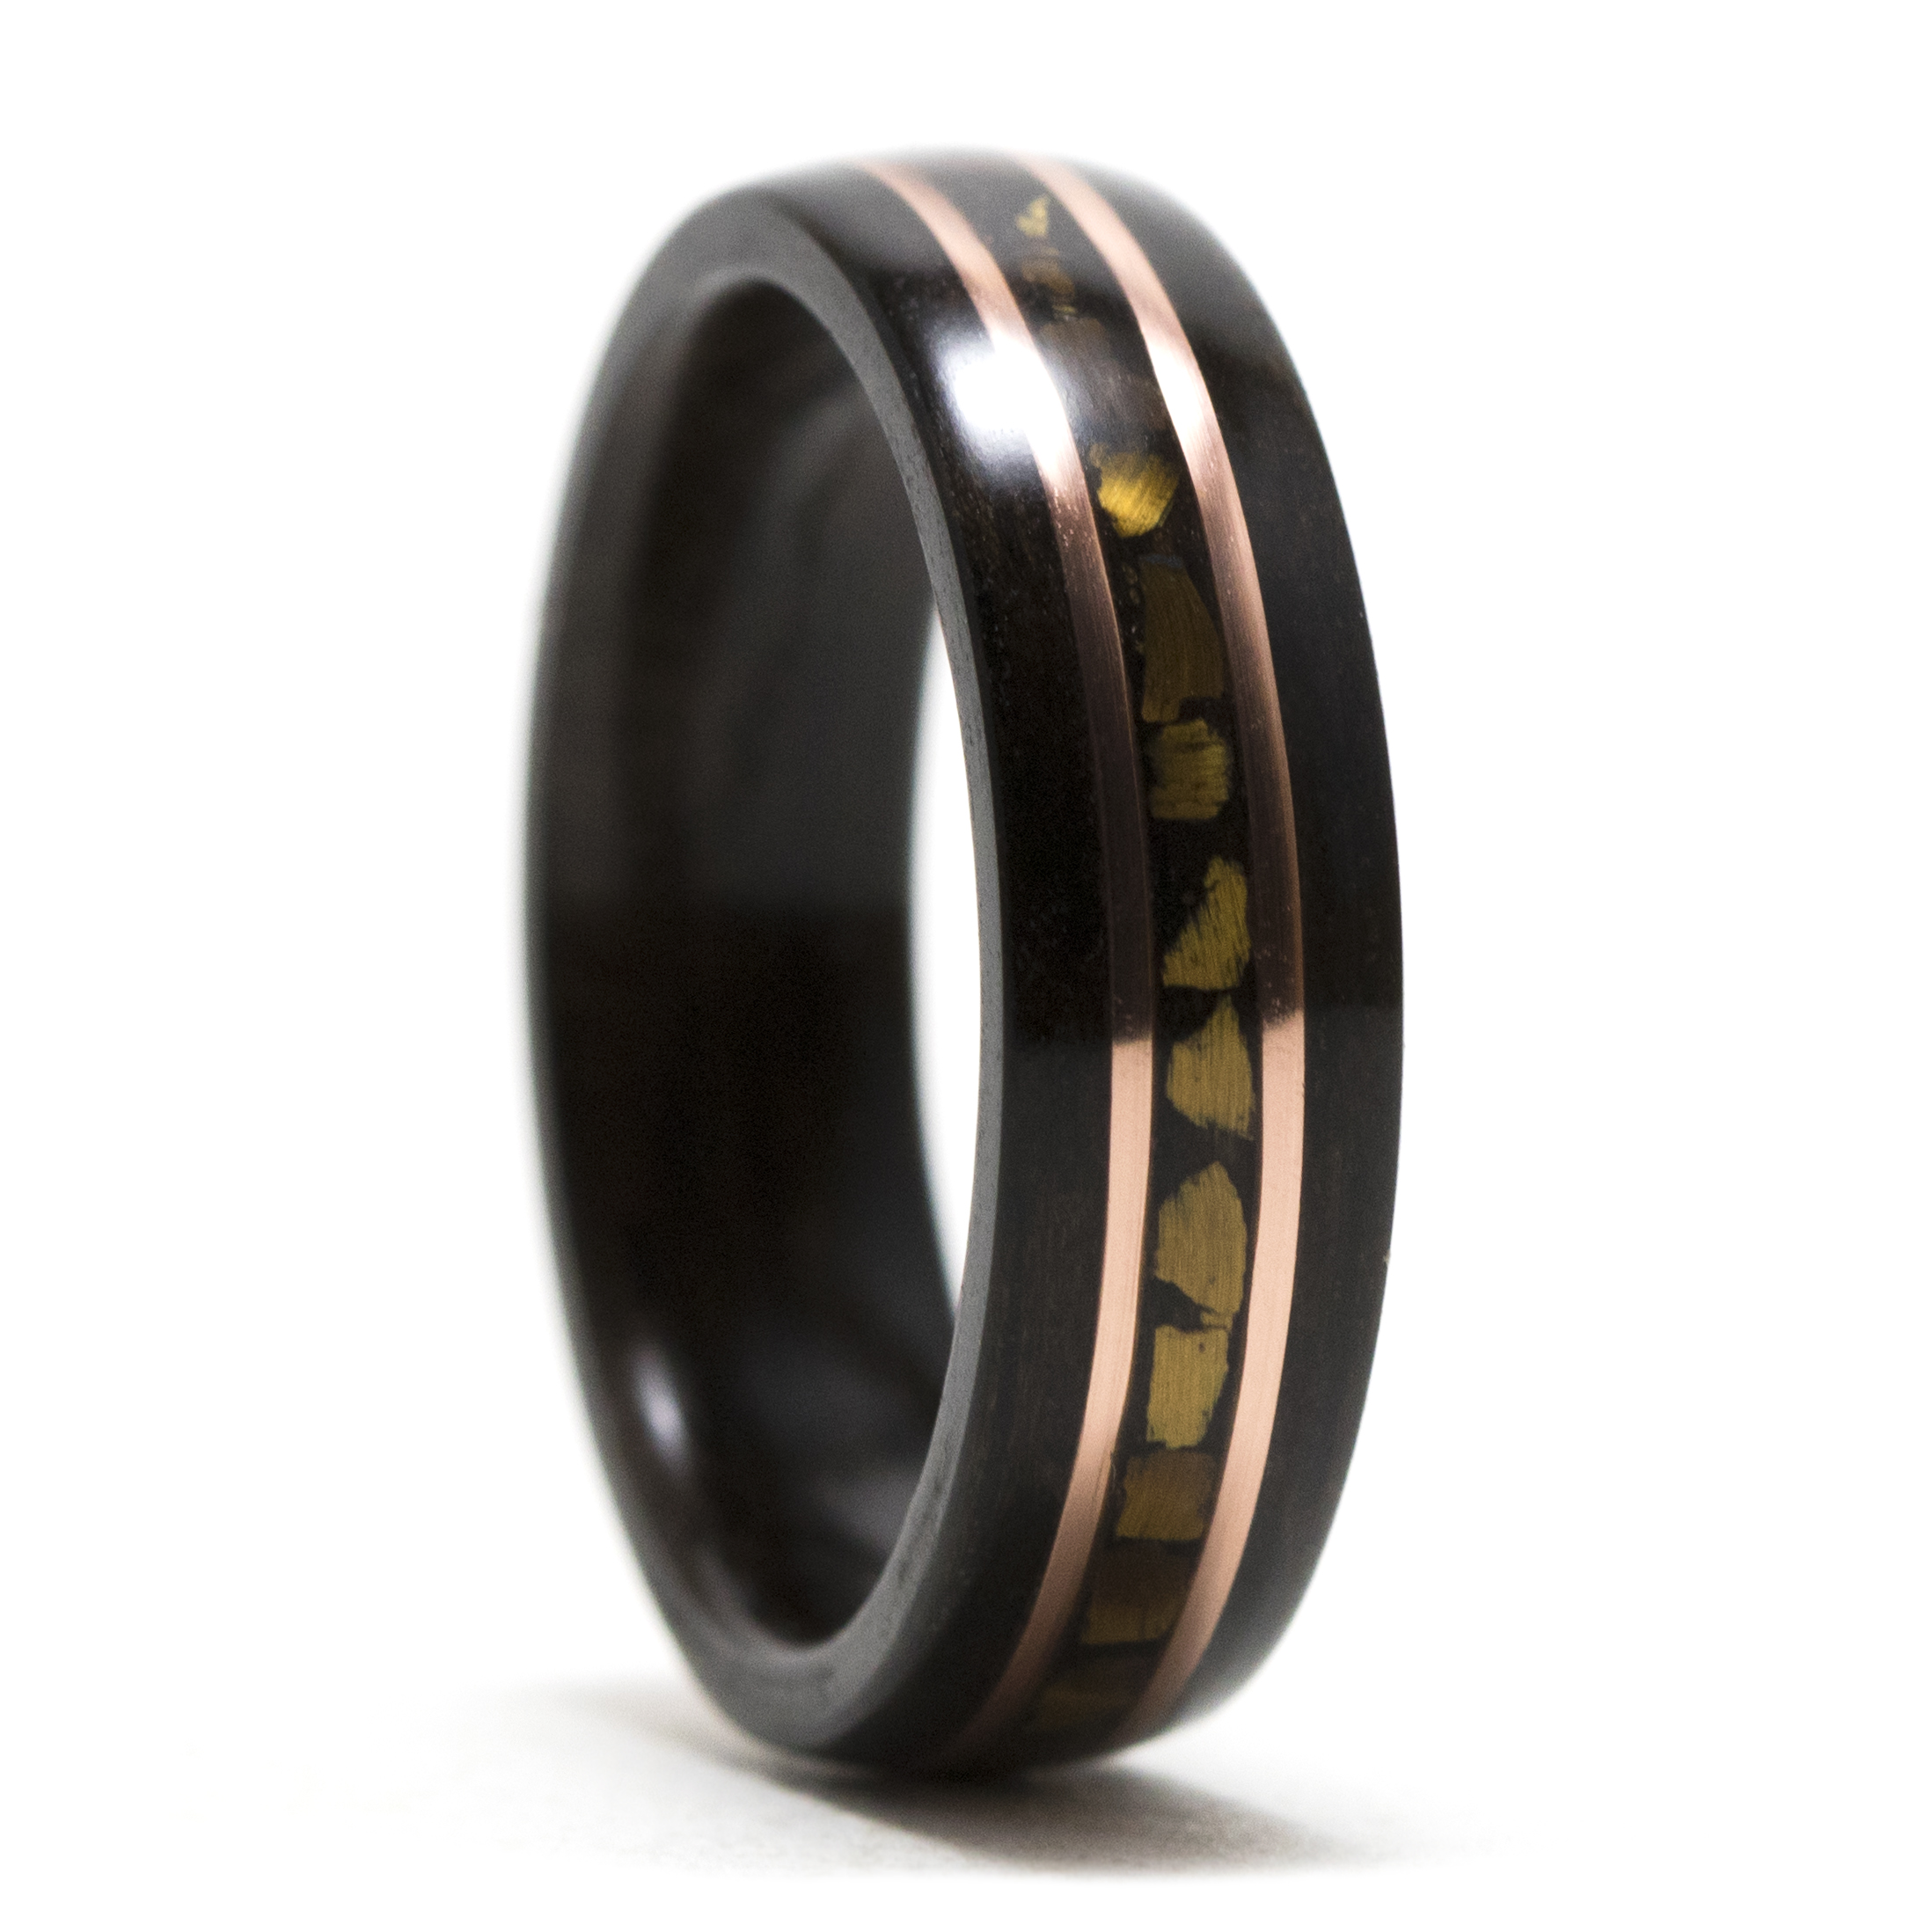 black hers inlayed wood ring set band maple rings with titanium p his nologo wedding koa